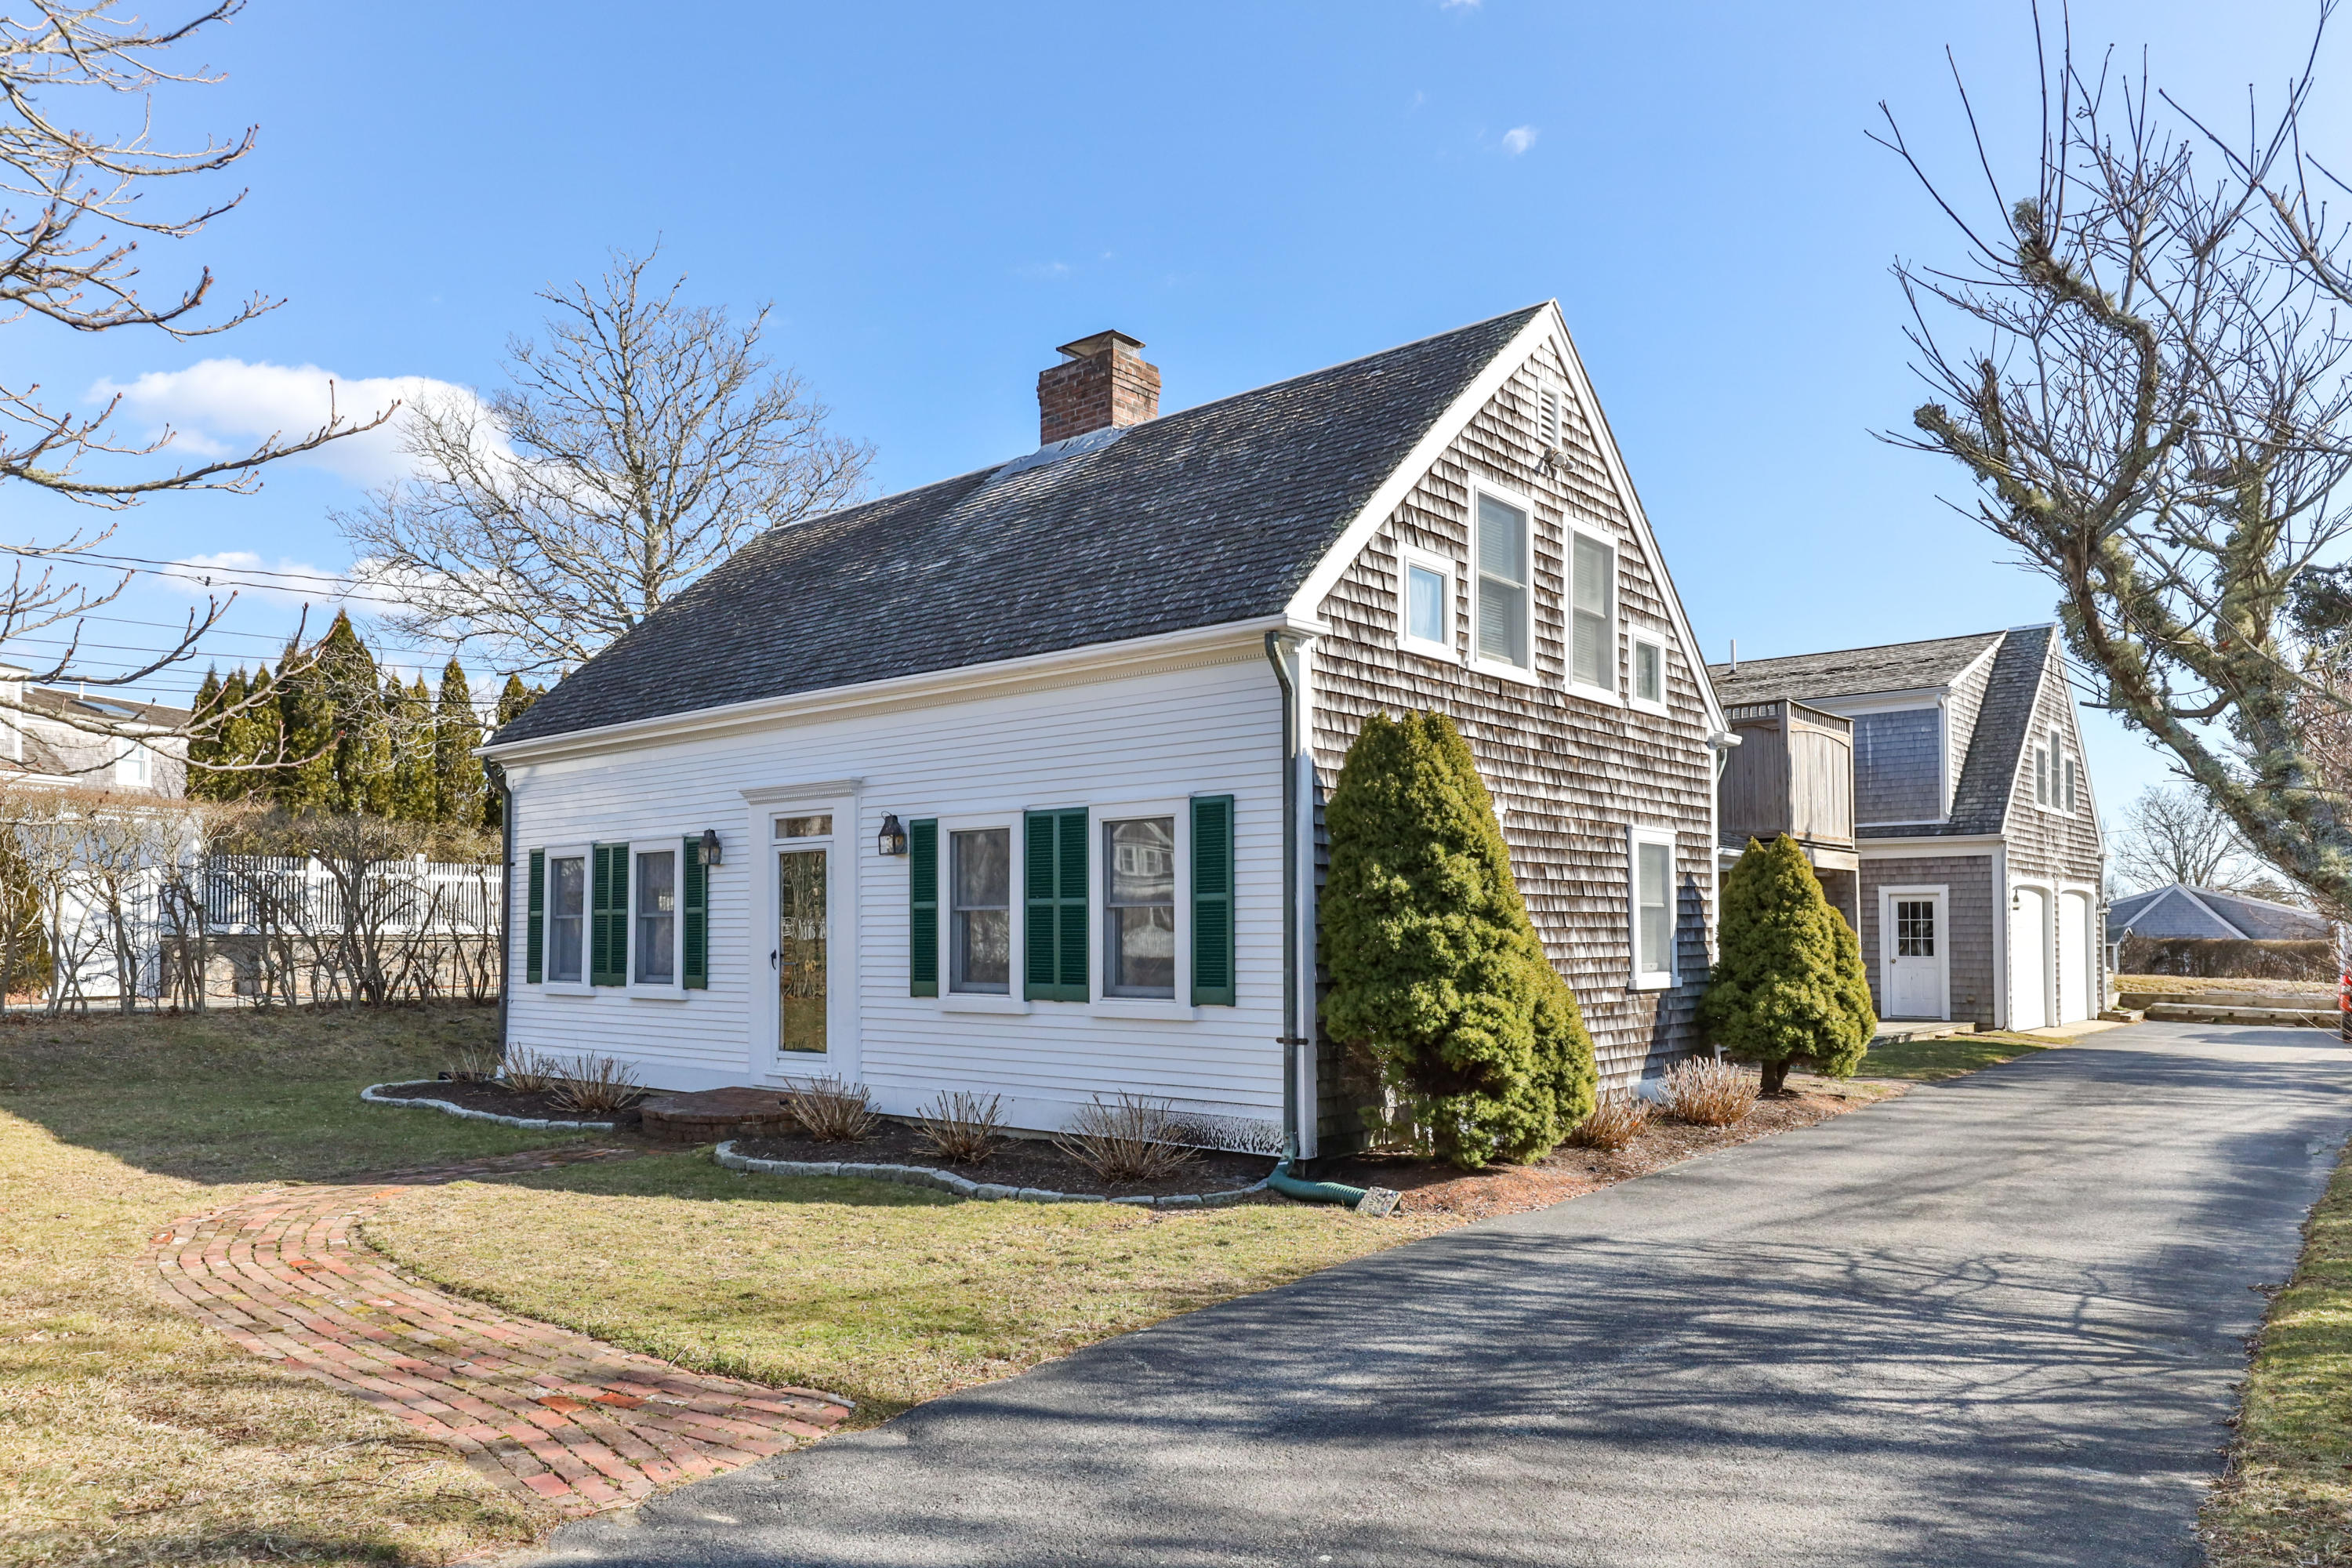 90 Seaview Street, Chatham, MA details